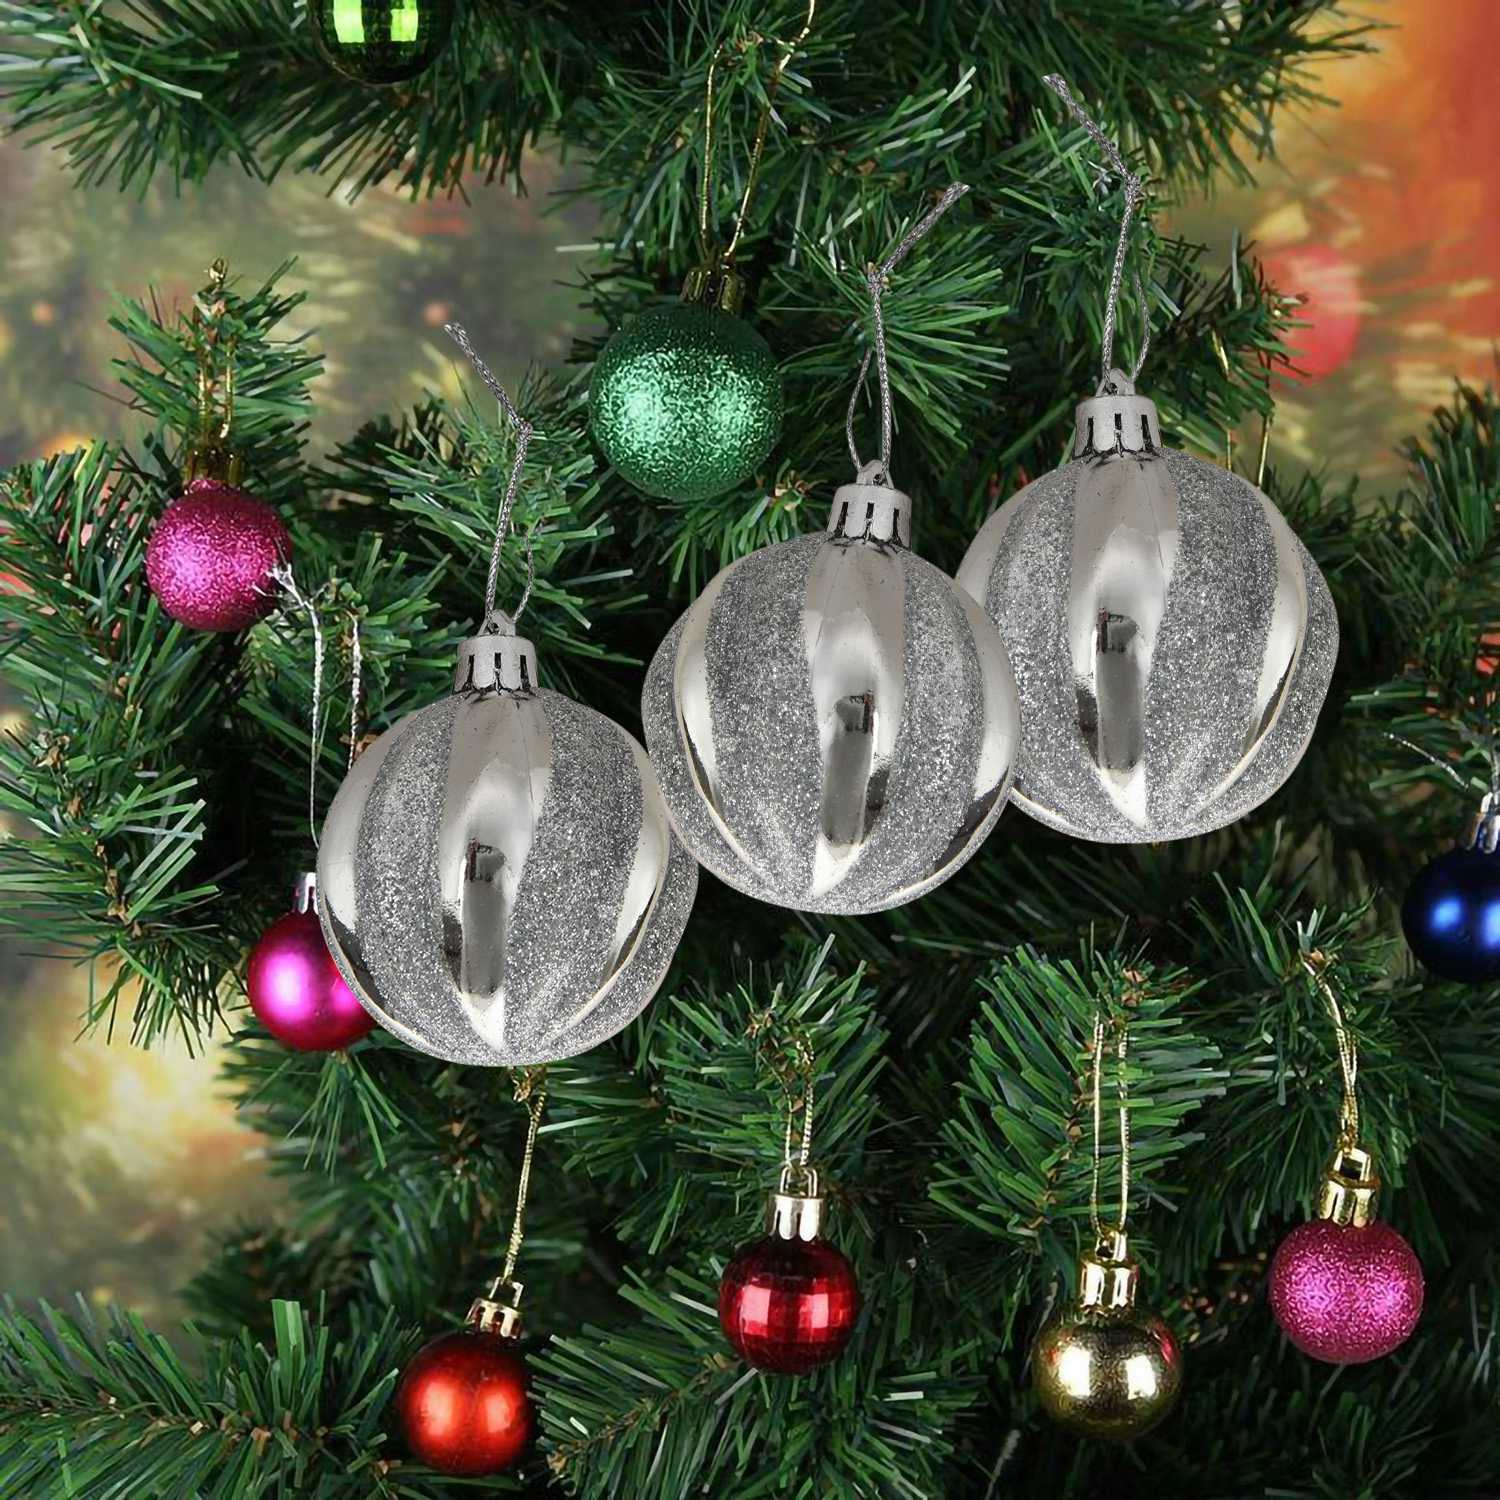 Cod 1 Set Christmas Tree Decor High Qulity White Gold Ball Ornament Bauble Party Hanging Ball For Home Christmas Decorations Silver Shopee Indonesia